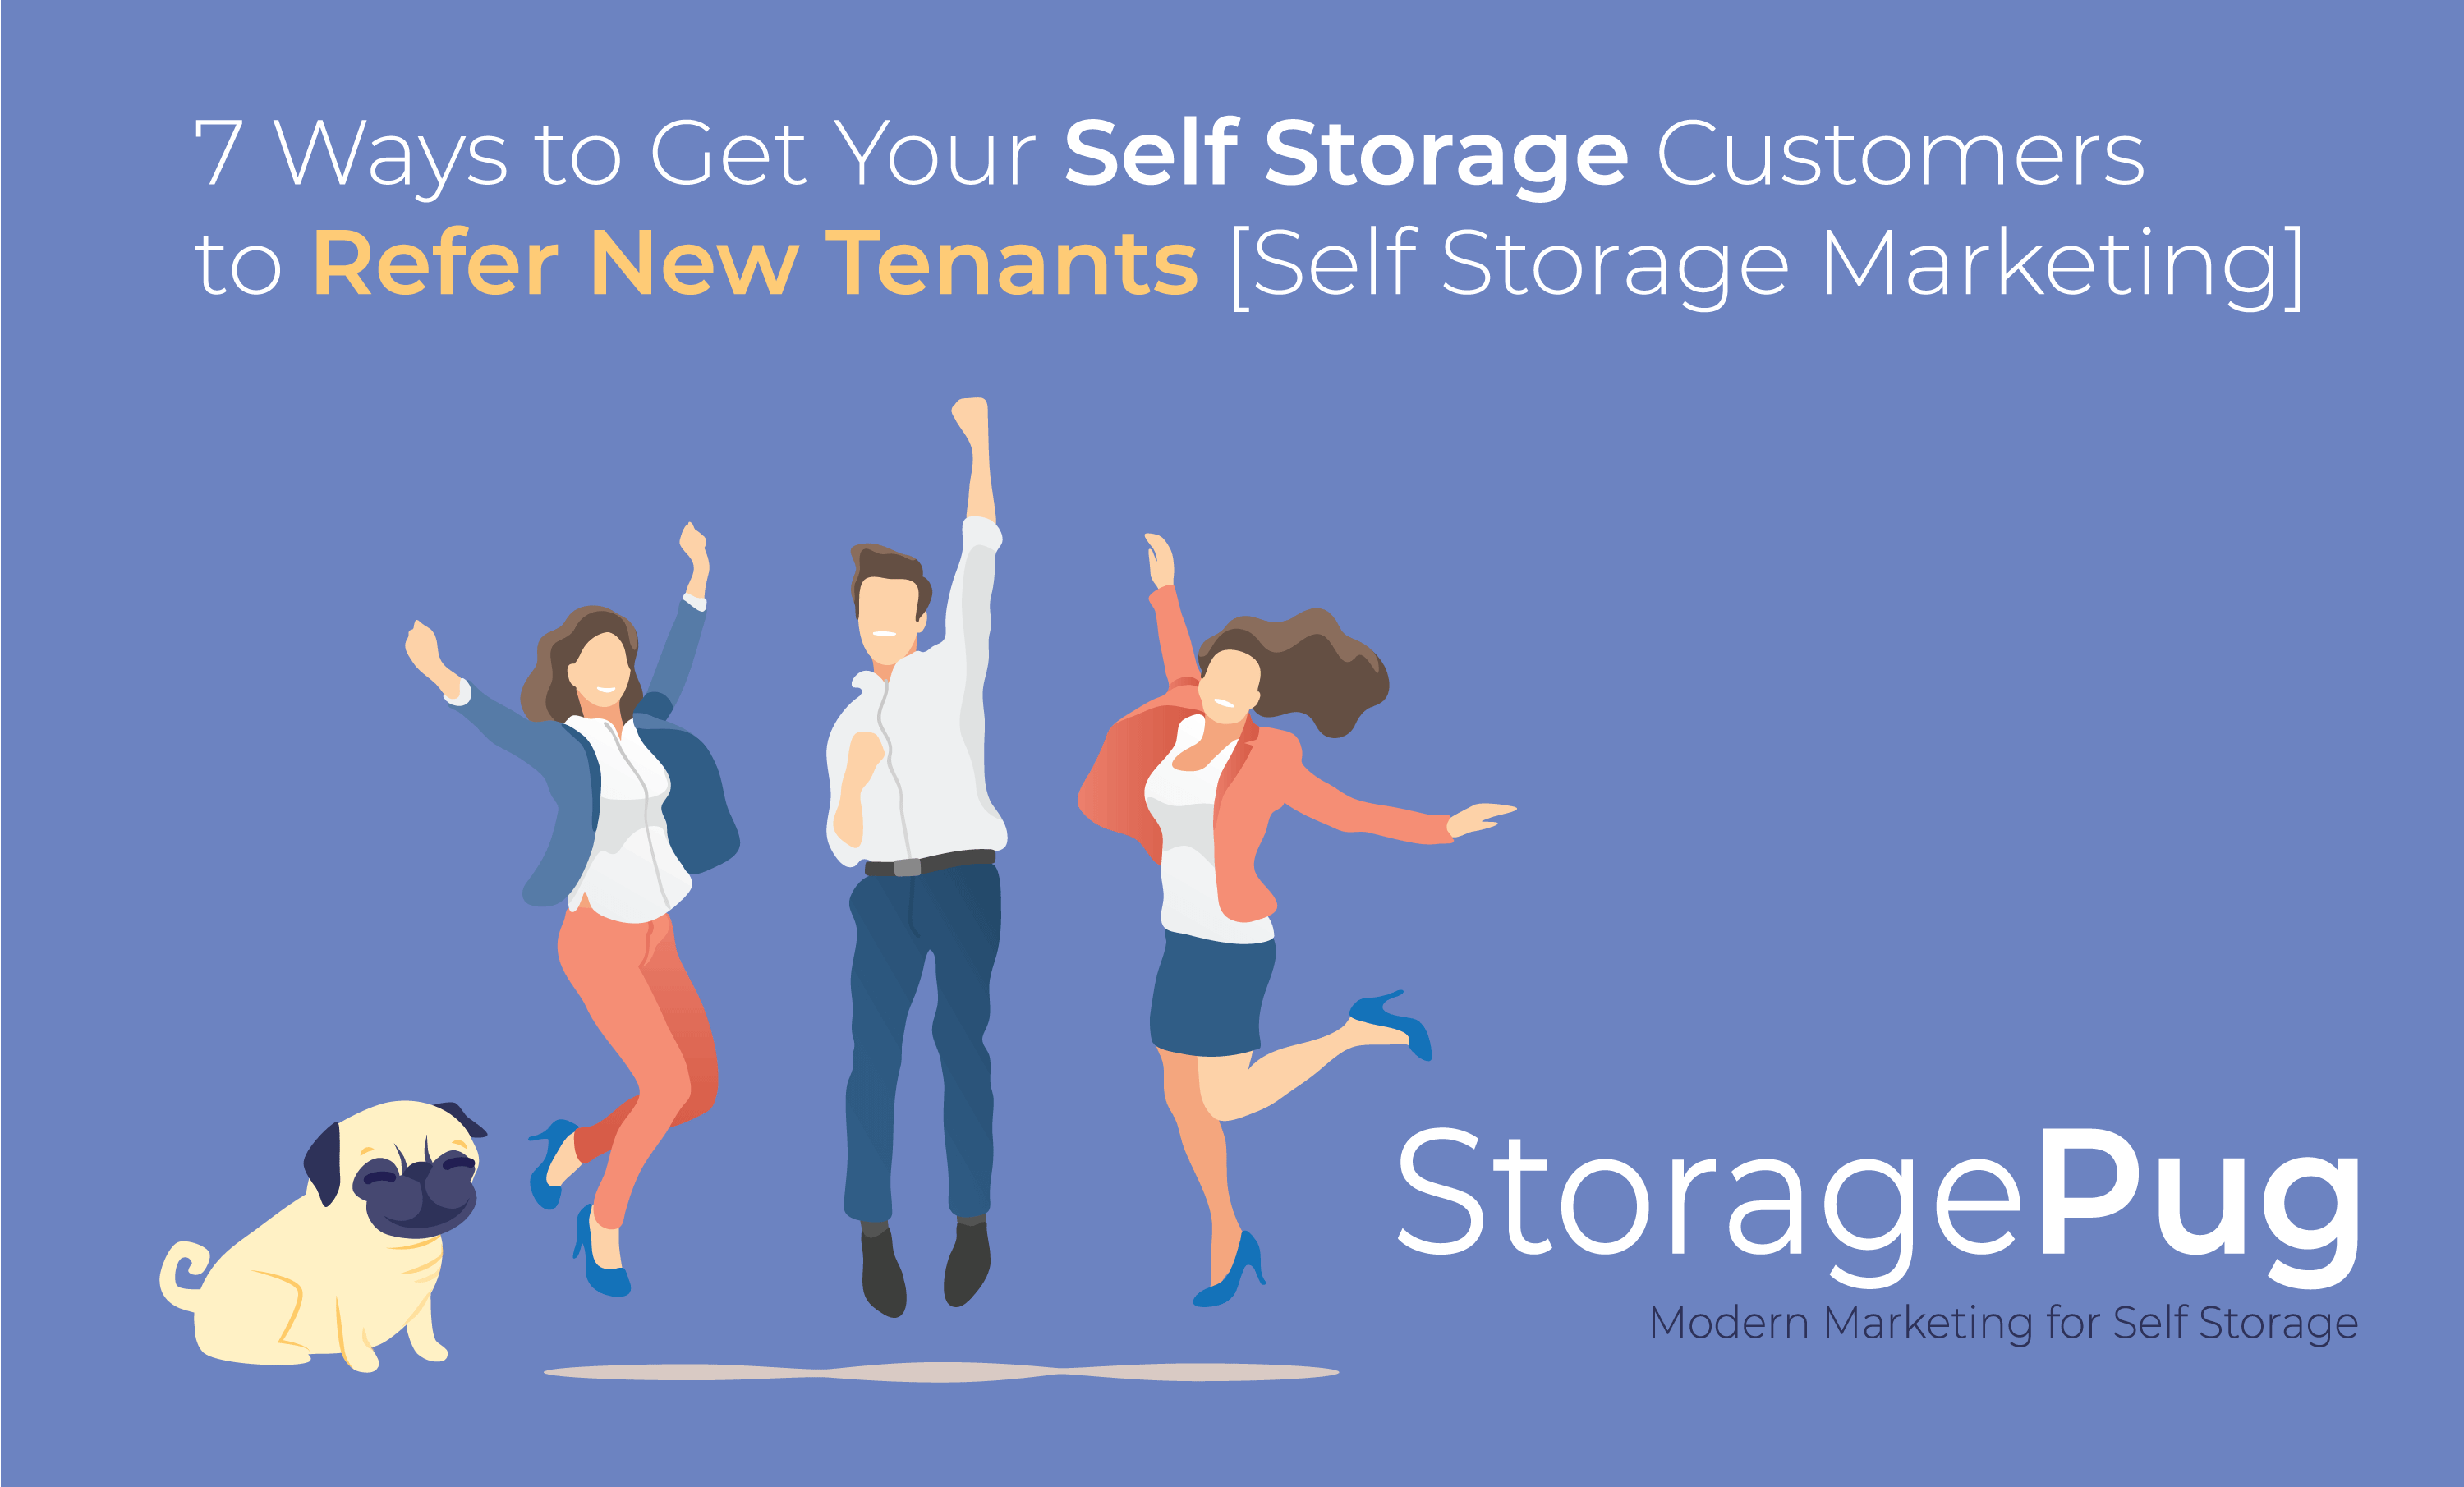 As the manager or owner of a self storage facility, you know that referrals are useful for growing your list of tenants.  Referrals from friends are the most credible form of advertising among consumers.